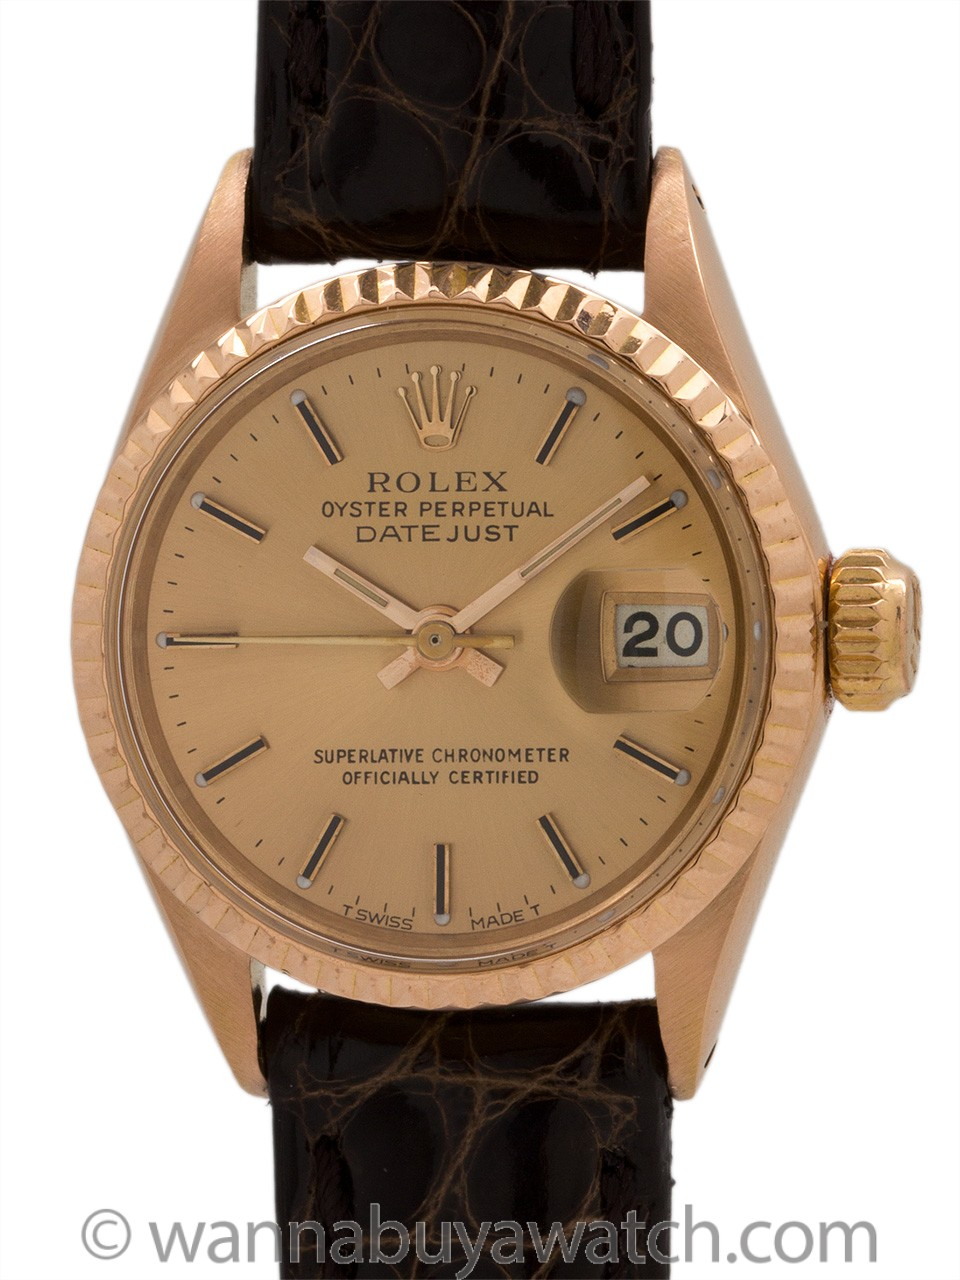 Lady Rolex Datejust 18K Rose Gold ref 6917 circa 1987